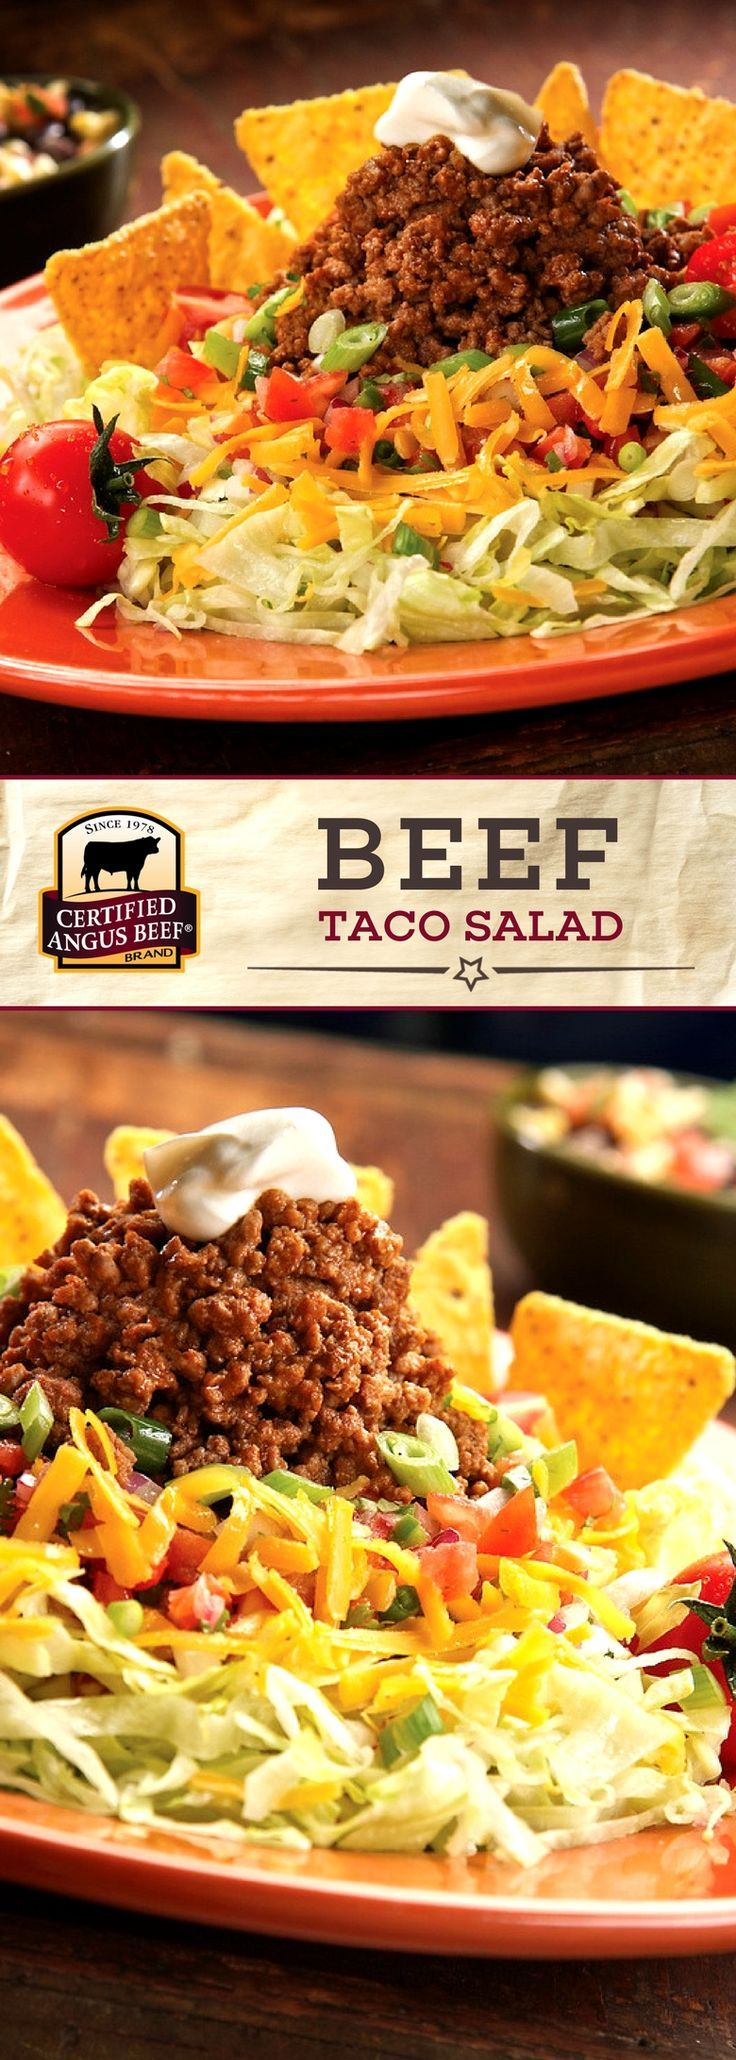 Certified Angus Beef®️️️ brand Beef Taco Salad uses the best ground chuck, combined with taco seasoning and fresh toppings, for a deliciously EASY recipe! Perfect for a family dinner!   #bestangusbeef #certifiedangusbeef #beefrecipe #easyrecipes #tacotuesday